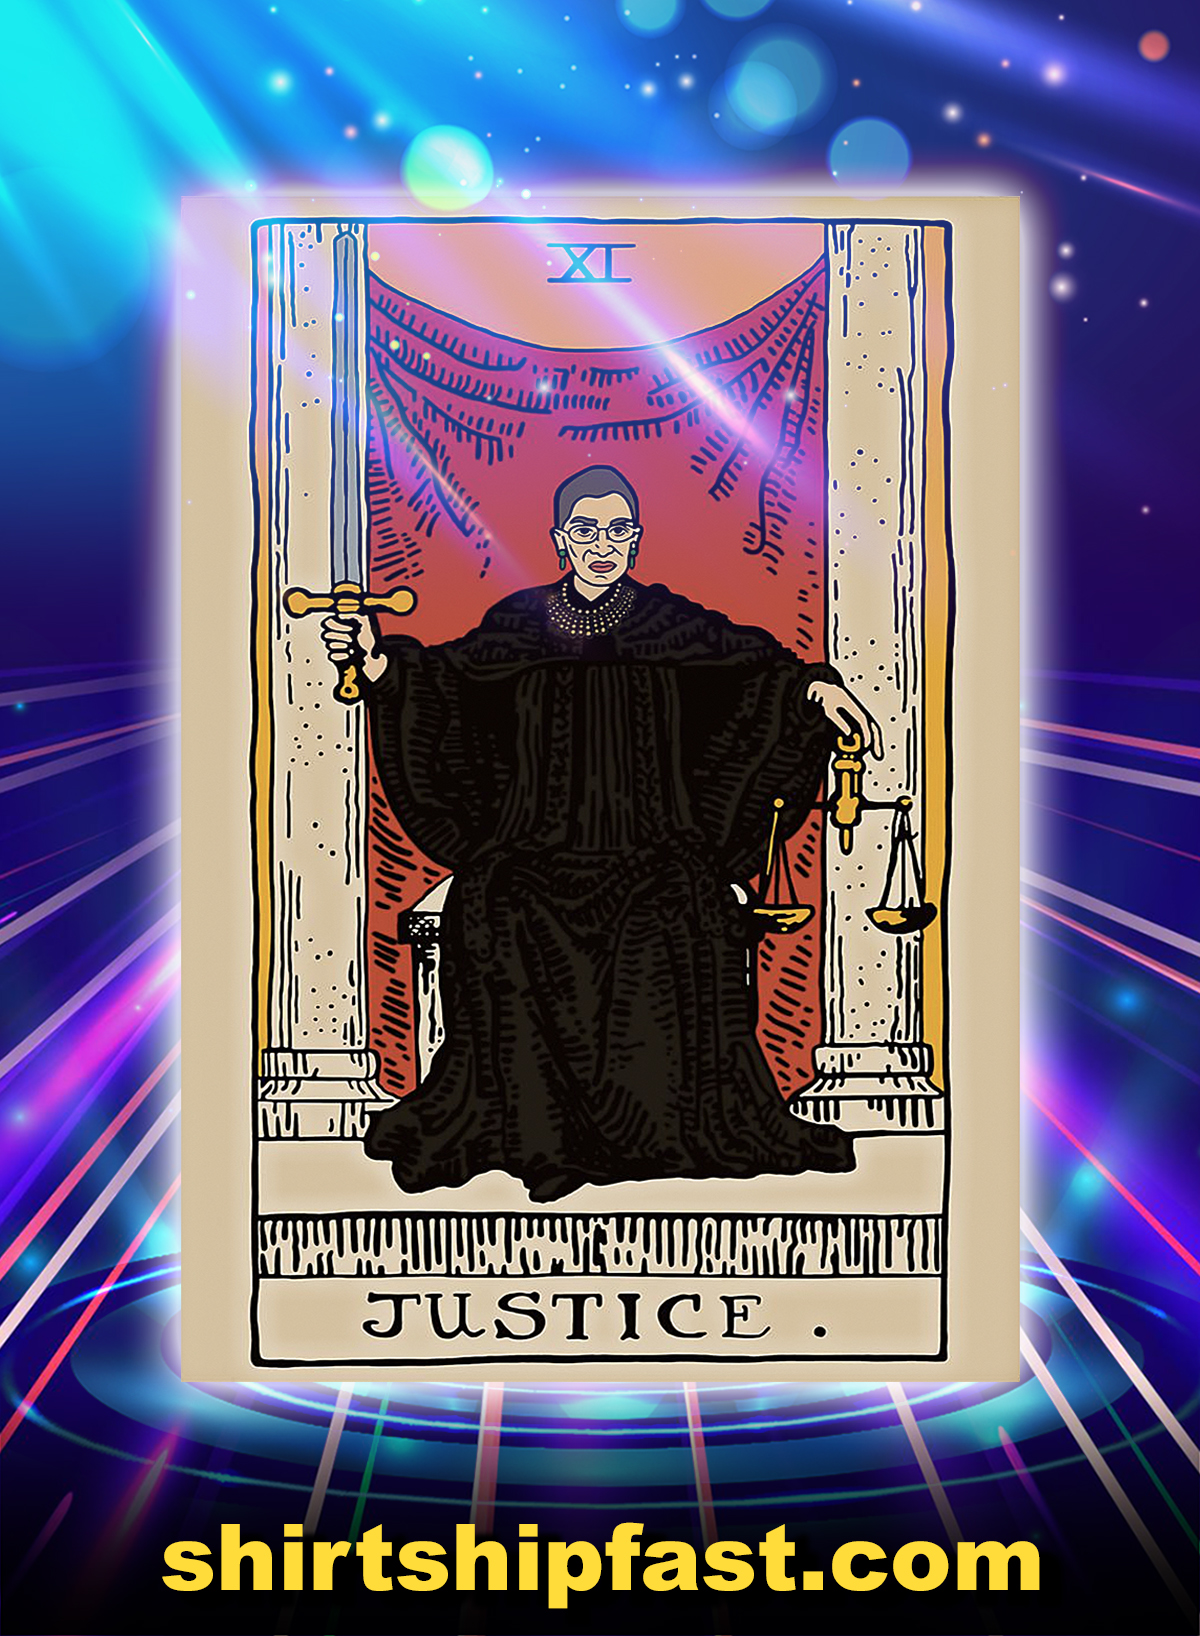 Card carot RBG justice poster - A4